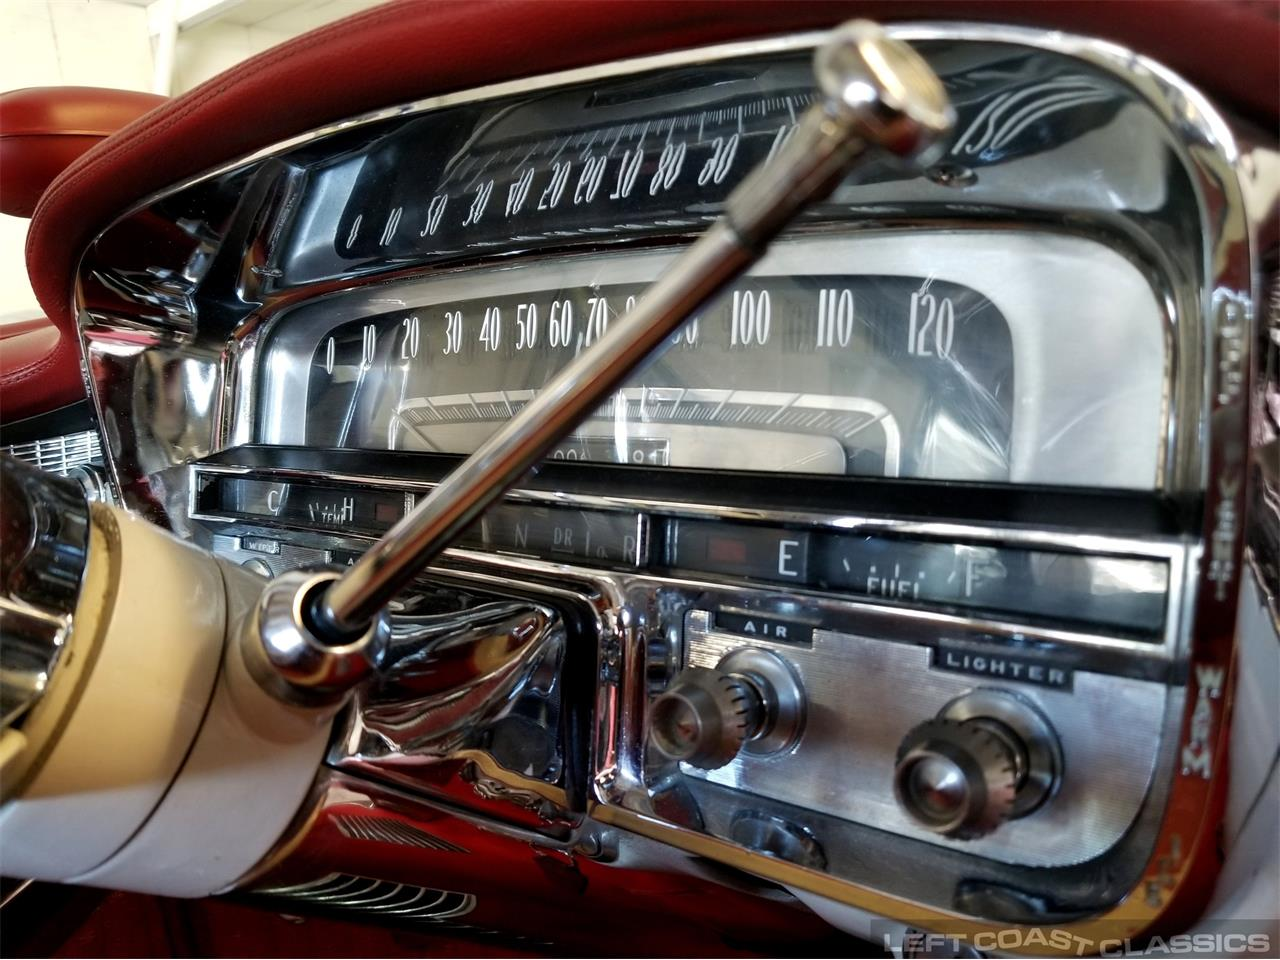 Large Picture of 1956 Eldorado Seville located in California - $39,500.00 Offered by Left Coast Classics - QD3M